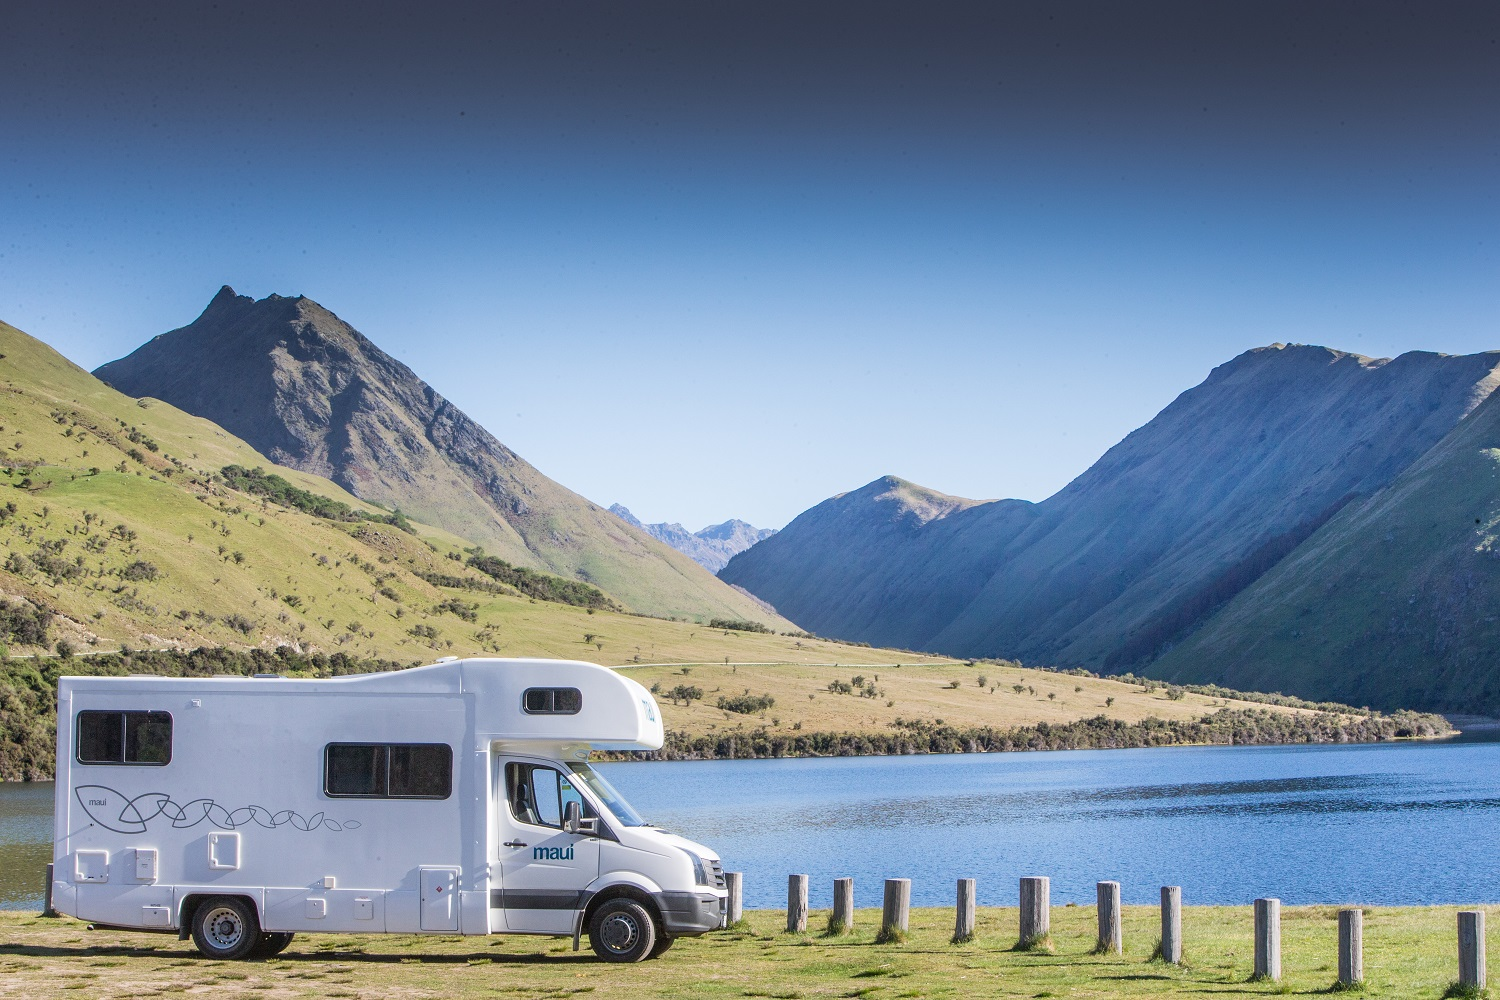 Maui Motorhomes NZ (domestic) Maui Beach Elite Motorhome